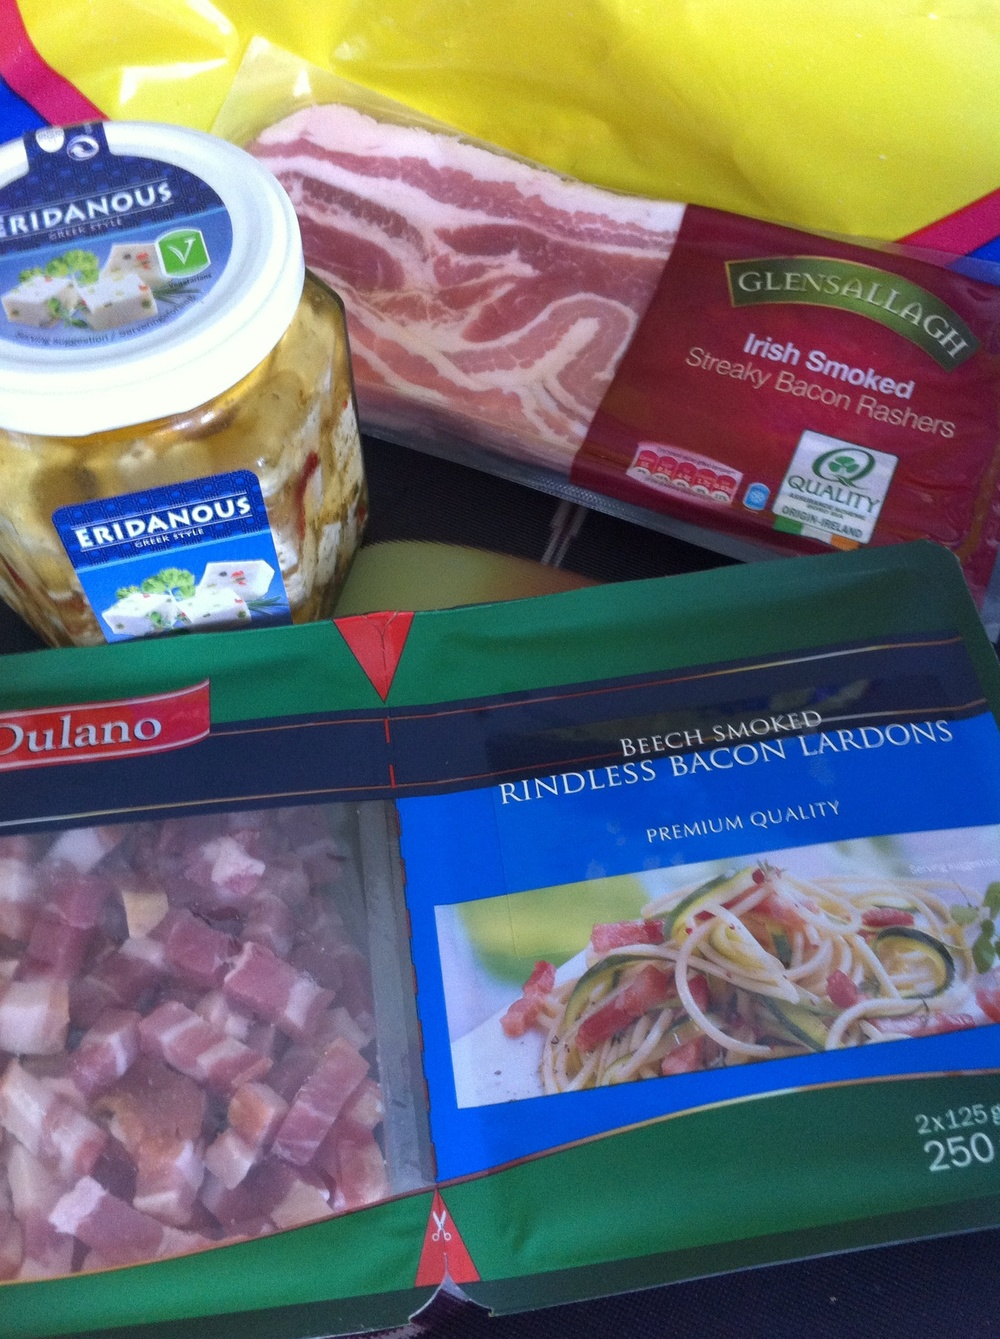 jar of feta £1.79   Smoked bacon £1.99.  Lardons £1.79